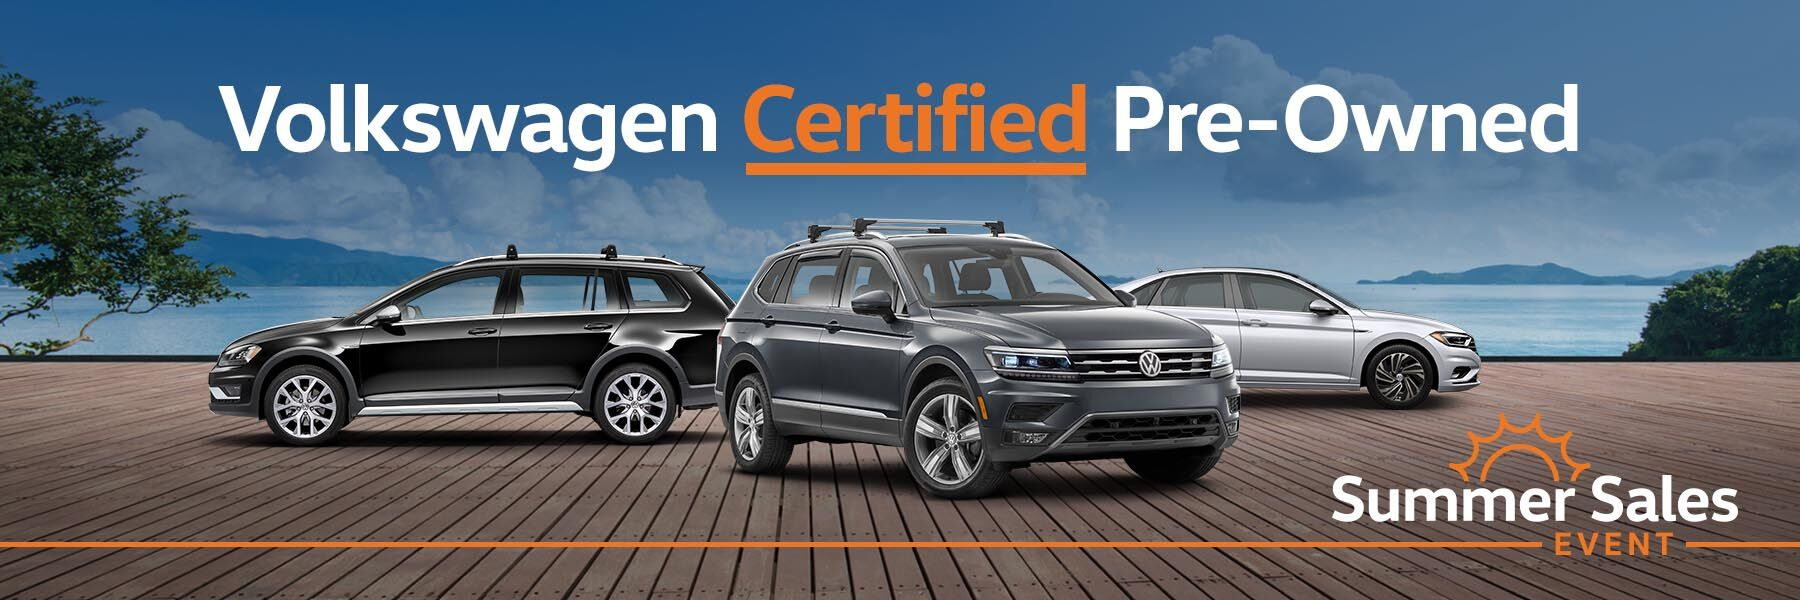 Volkswagen Certified Pre-Owned in Pompton Plains, NJ